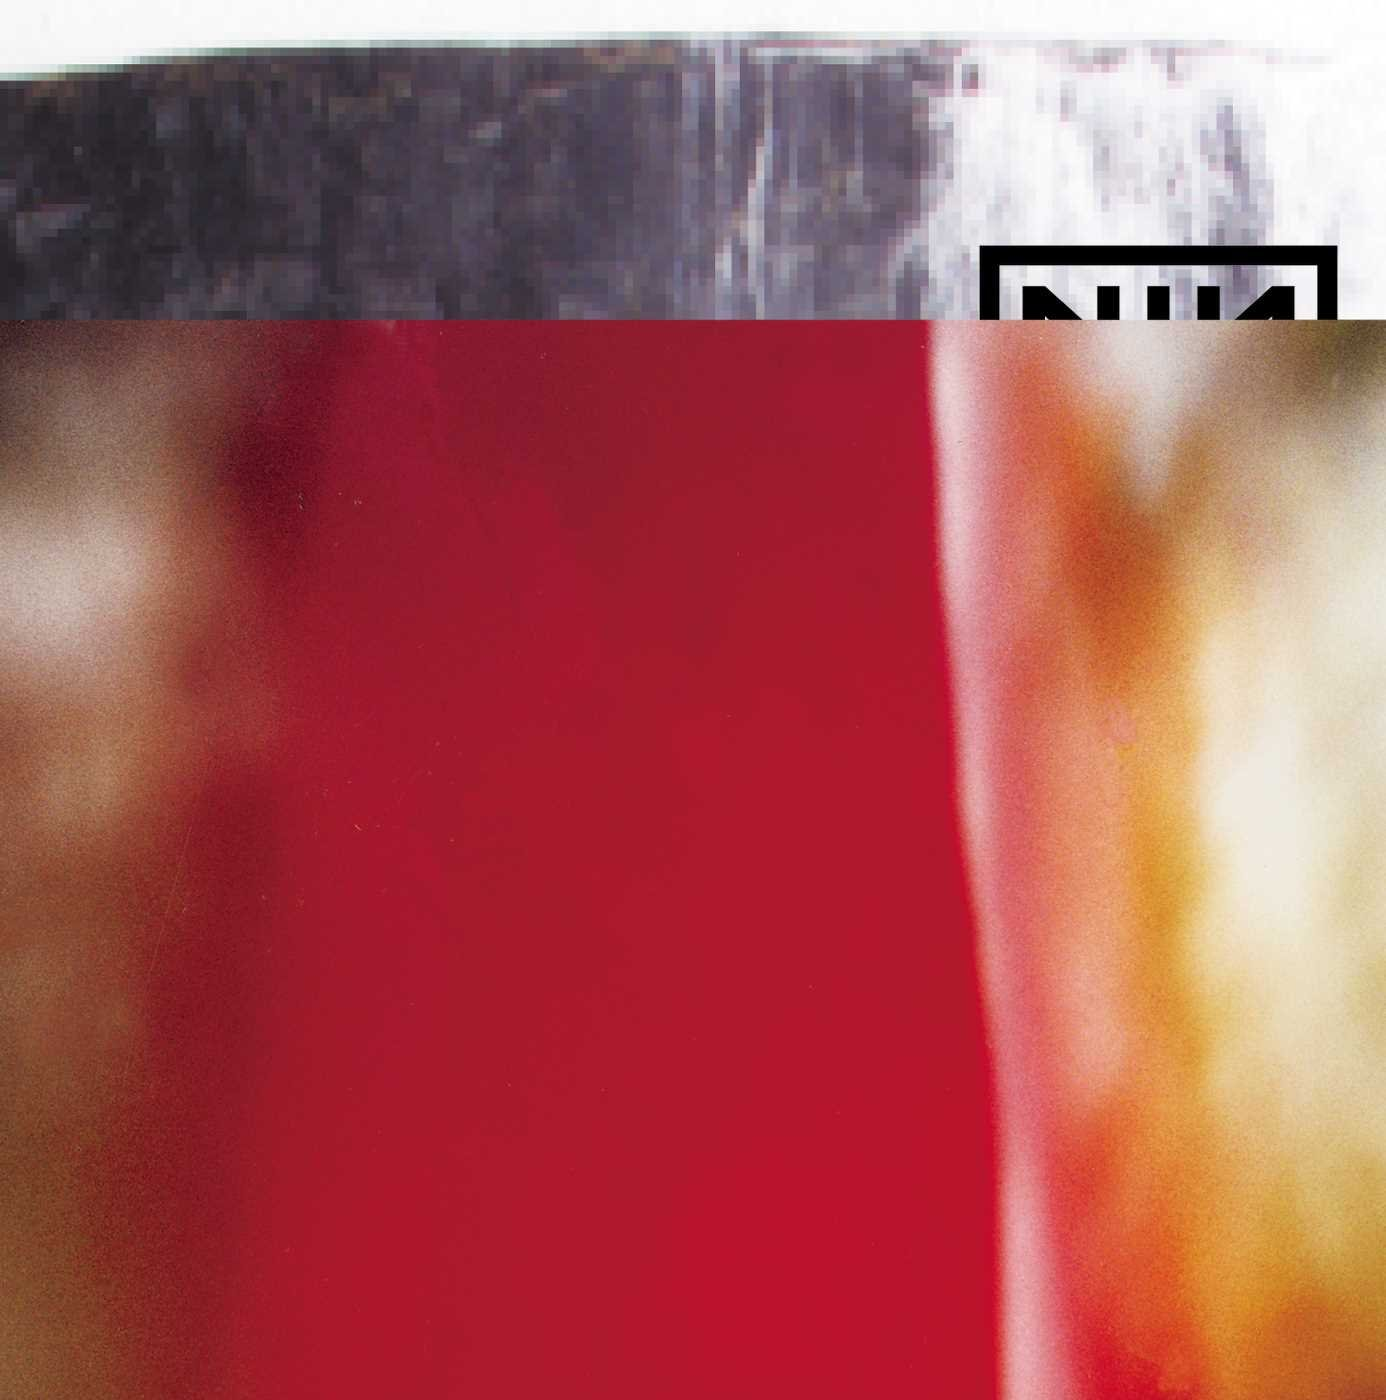 Nine Inch Nails - The Fragile [Vinyl] - Amazon.com Music